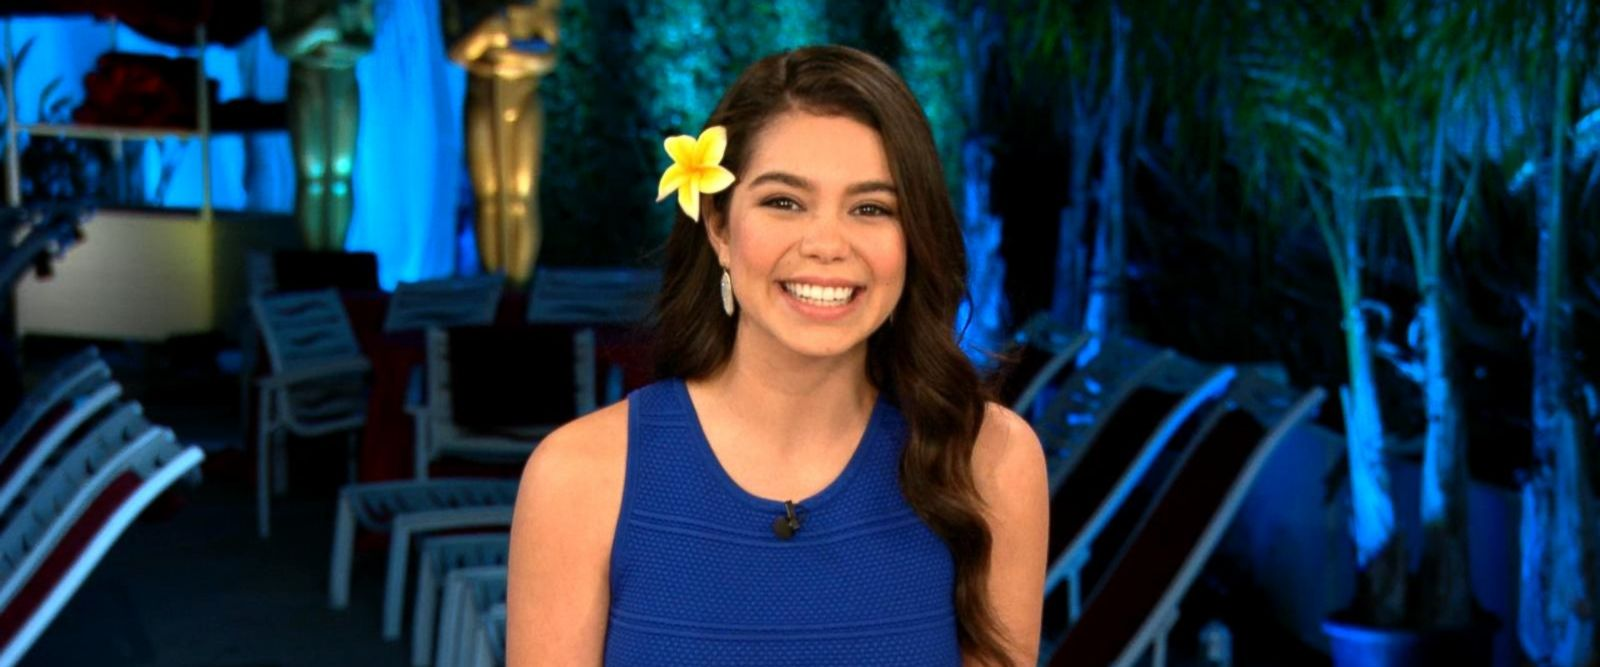 VIDEO: Breakout star Aulii Cravalho from Moana dishes on her Oscars performance